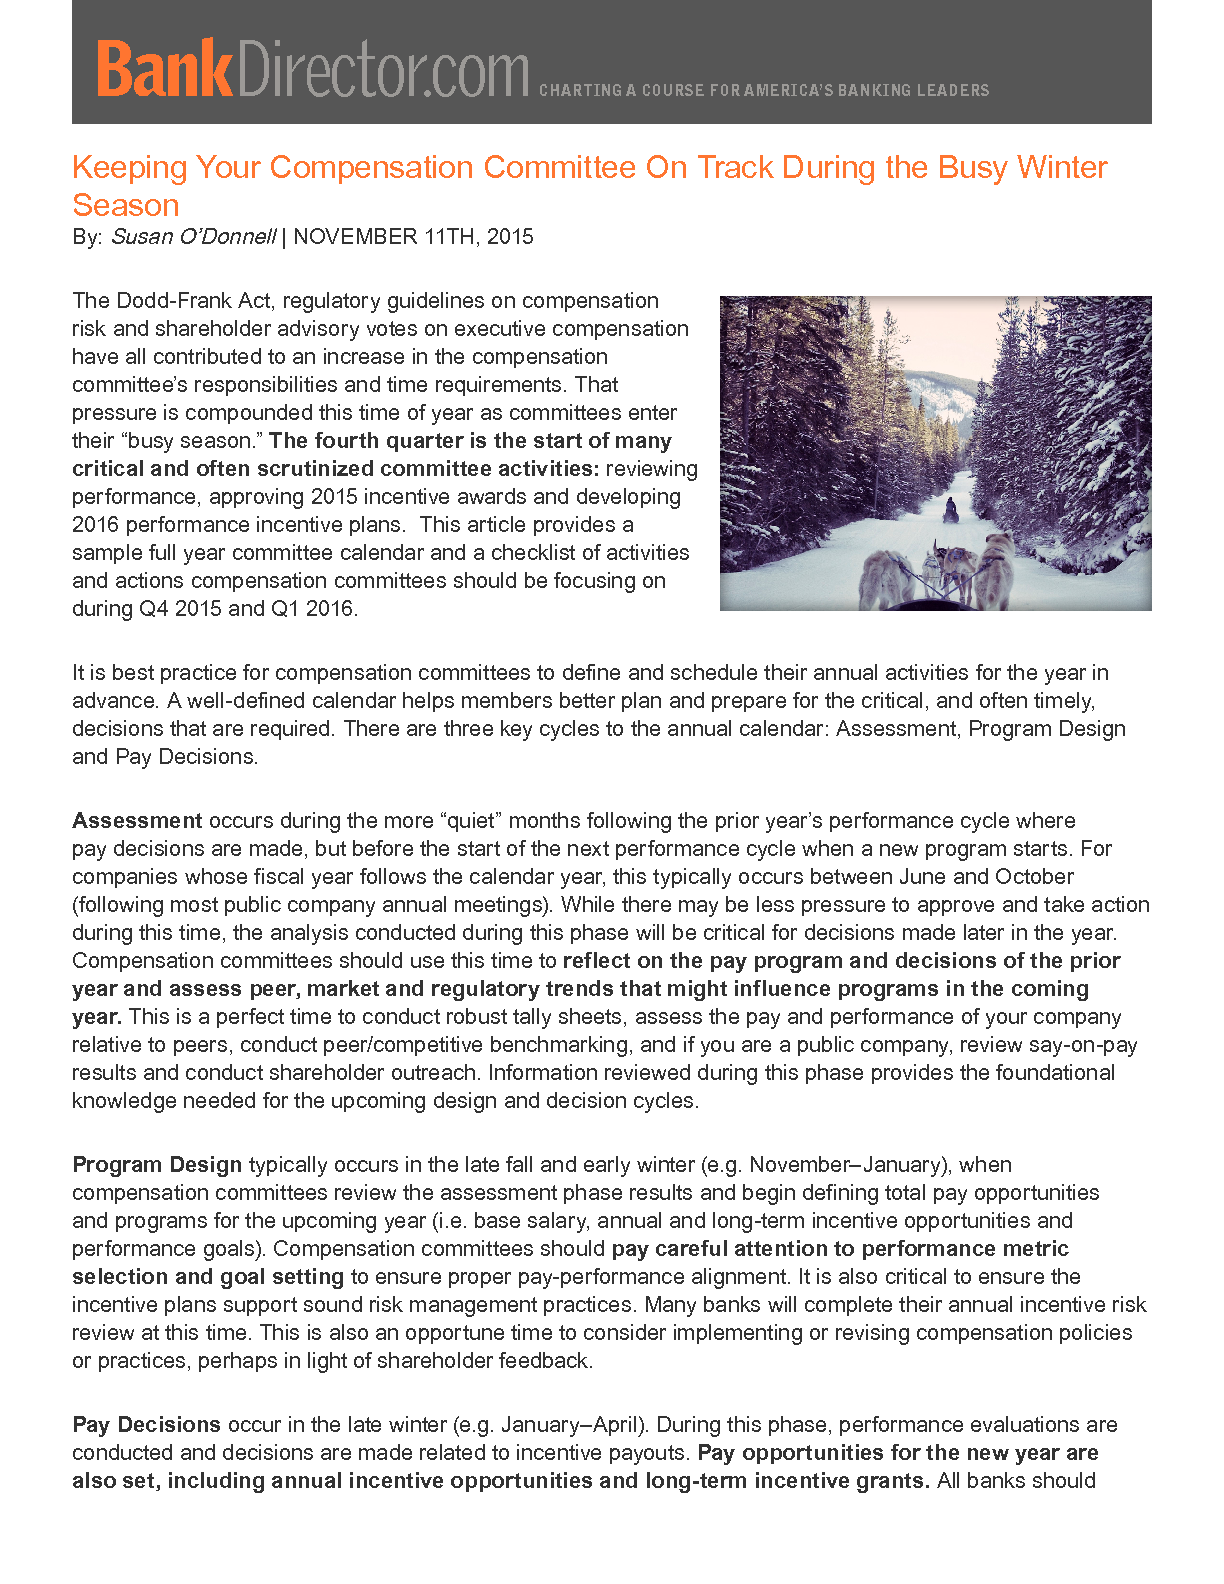 Keeping Your Compensation Committee On Track During the Busy Winter Season (PDF)